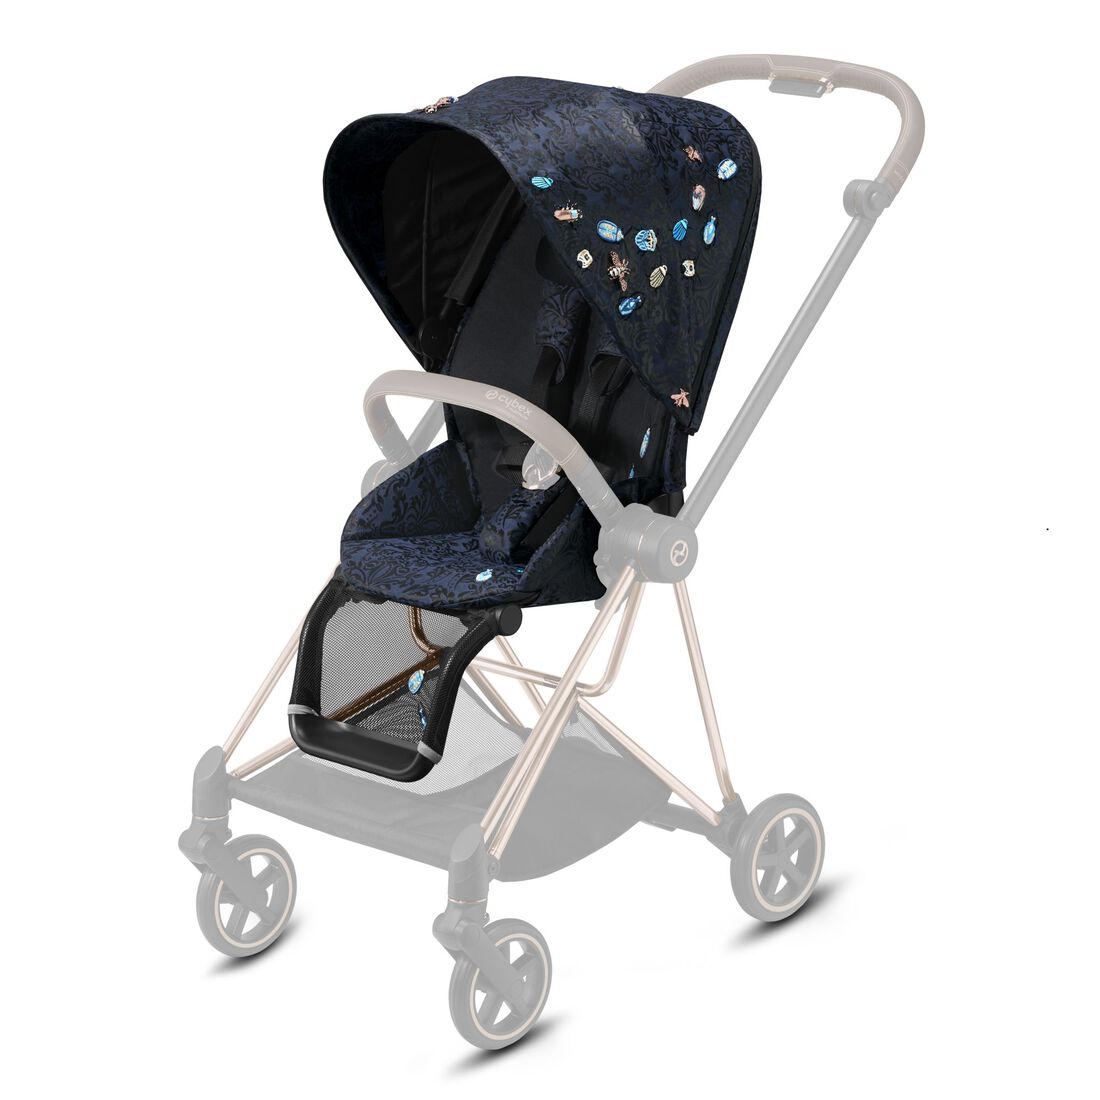 CYBEX Mios Seat Pack - Jewels of Nature in Jewels of Nature large image number 1